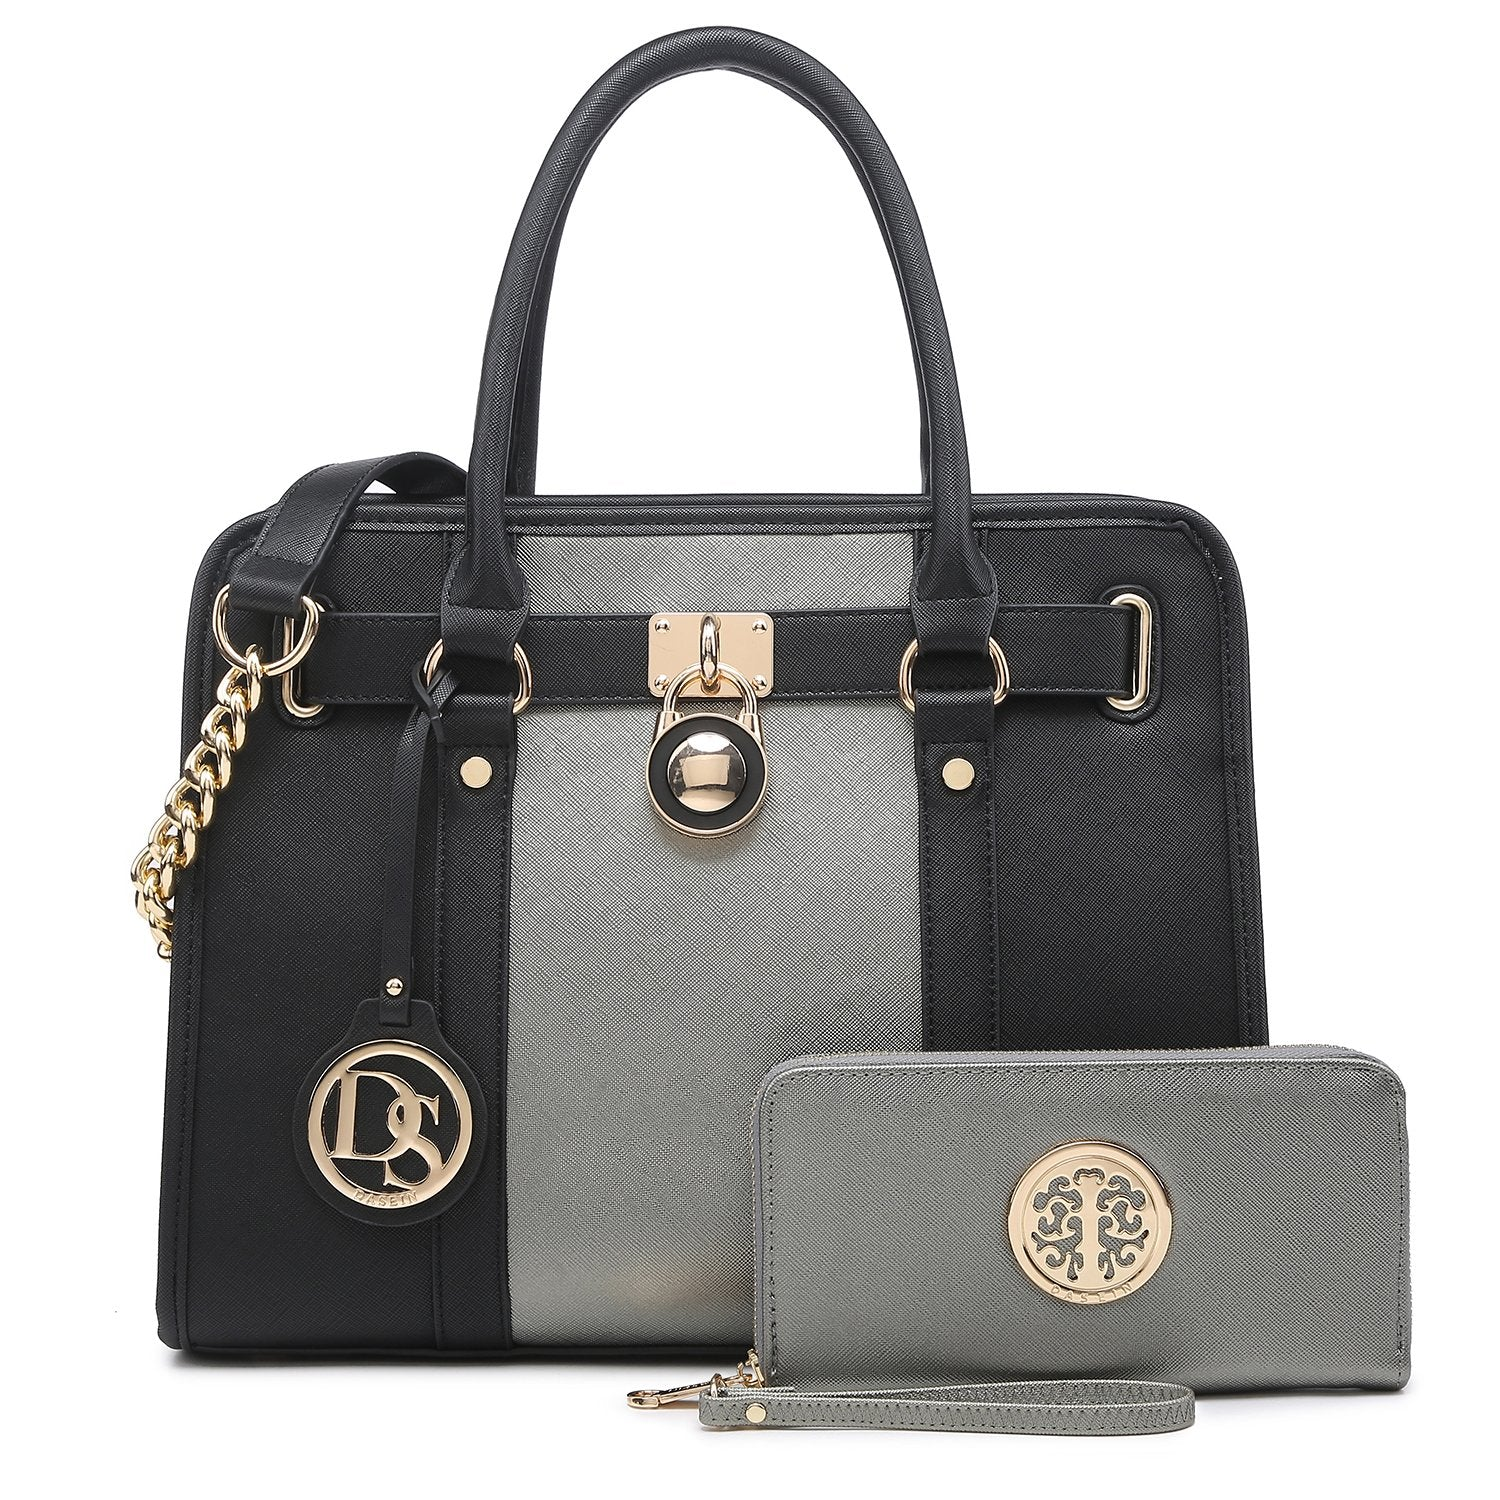 Hanging Emblem Handbag with Matching Wallet-Handbags & Purses-Dasein Bags